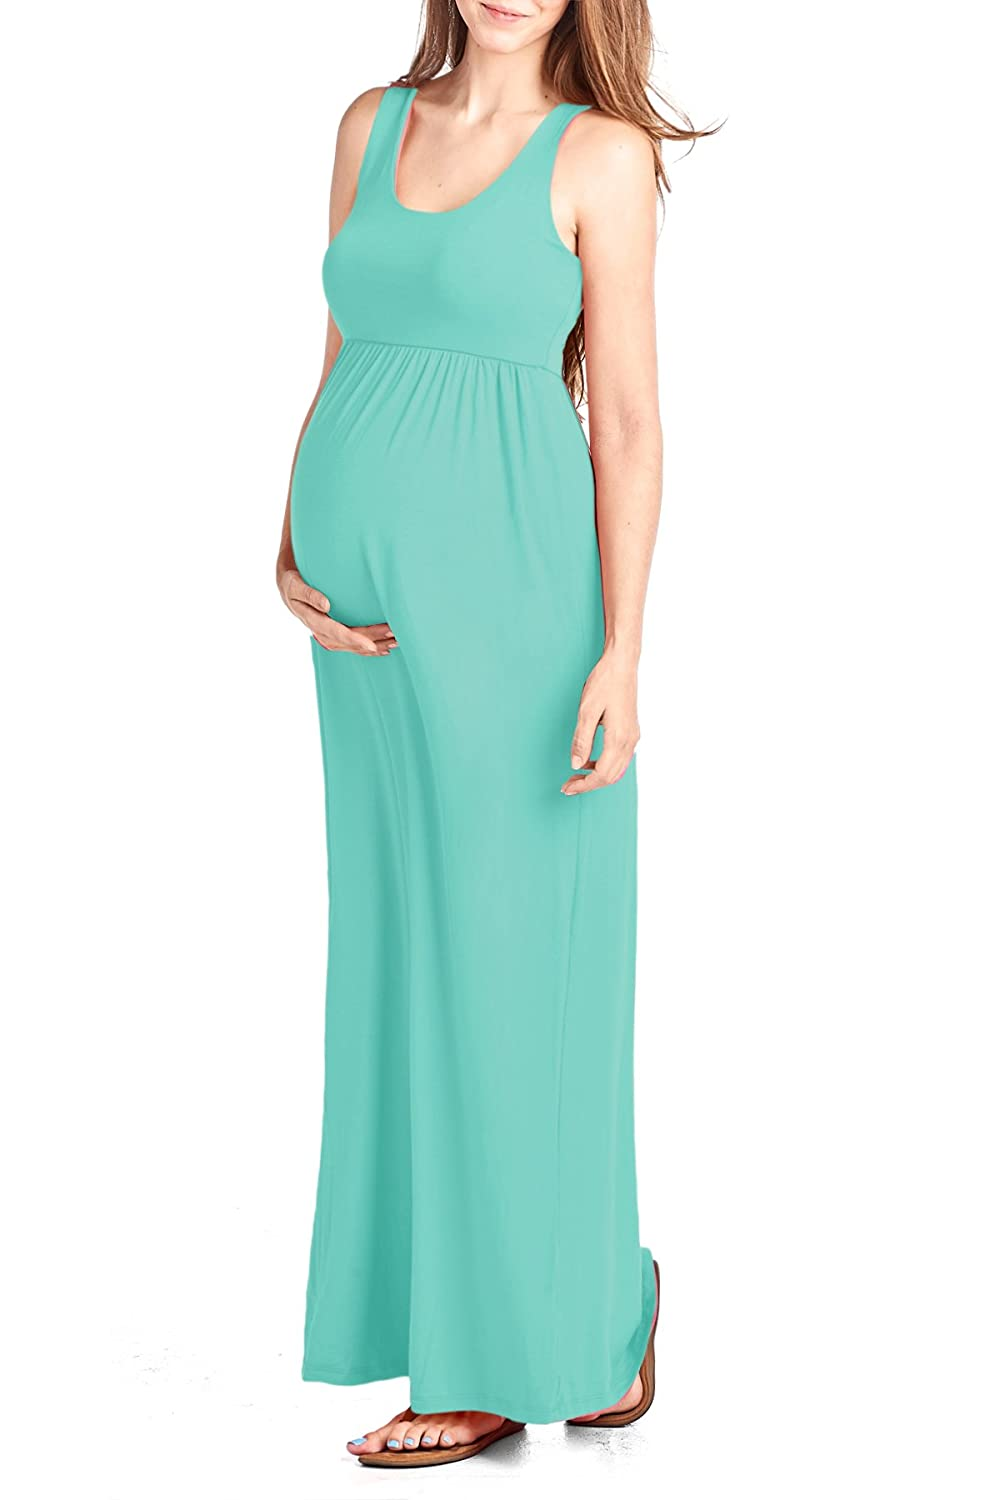 b7afc50aa28 Beachcoco Women s Maternity Maxi Tank Dress Made in USA at Amazon Women s  Clothing store